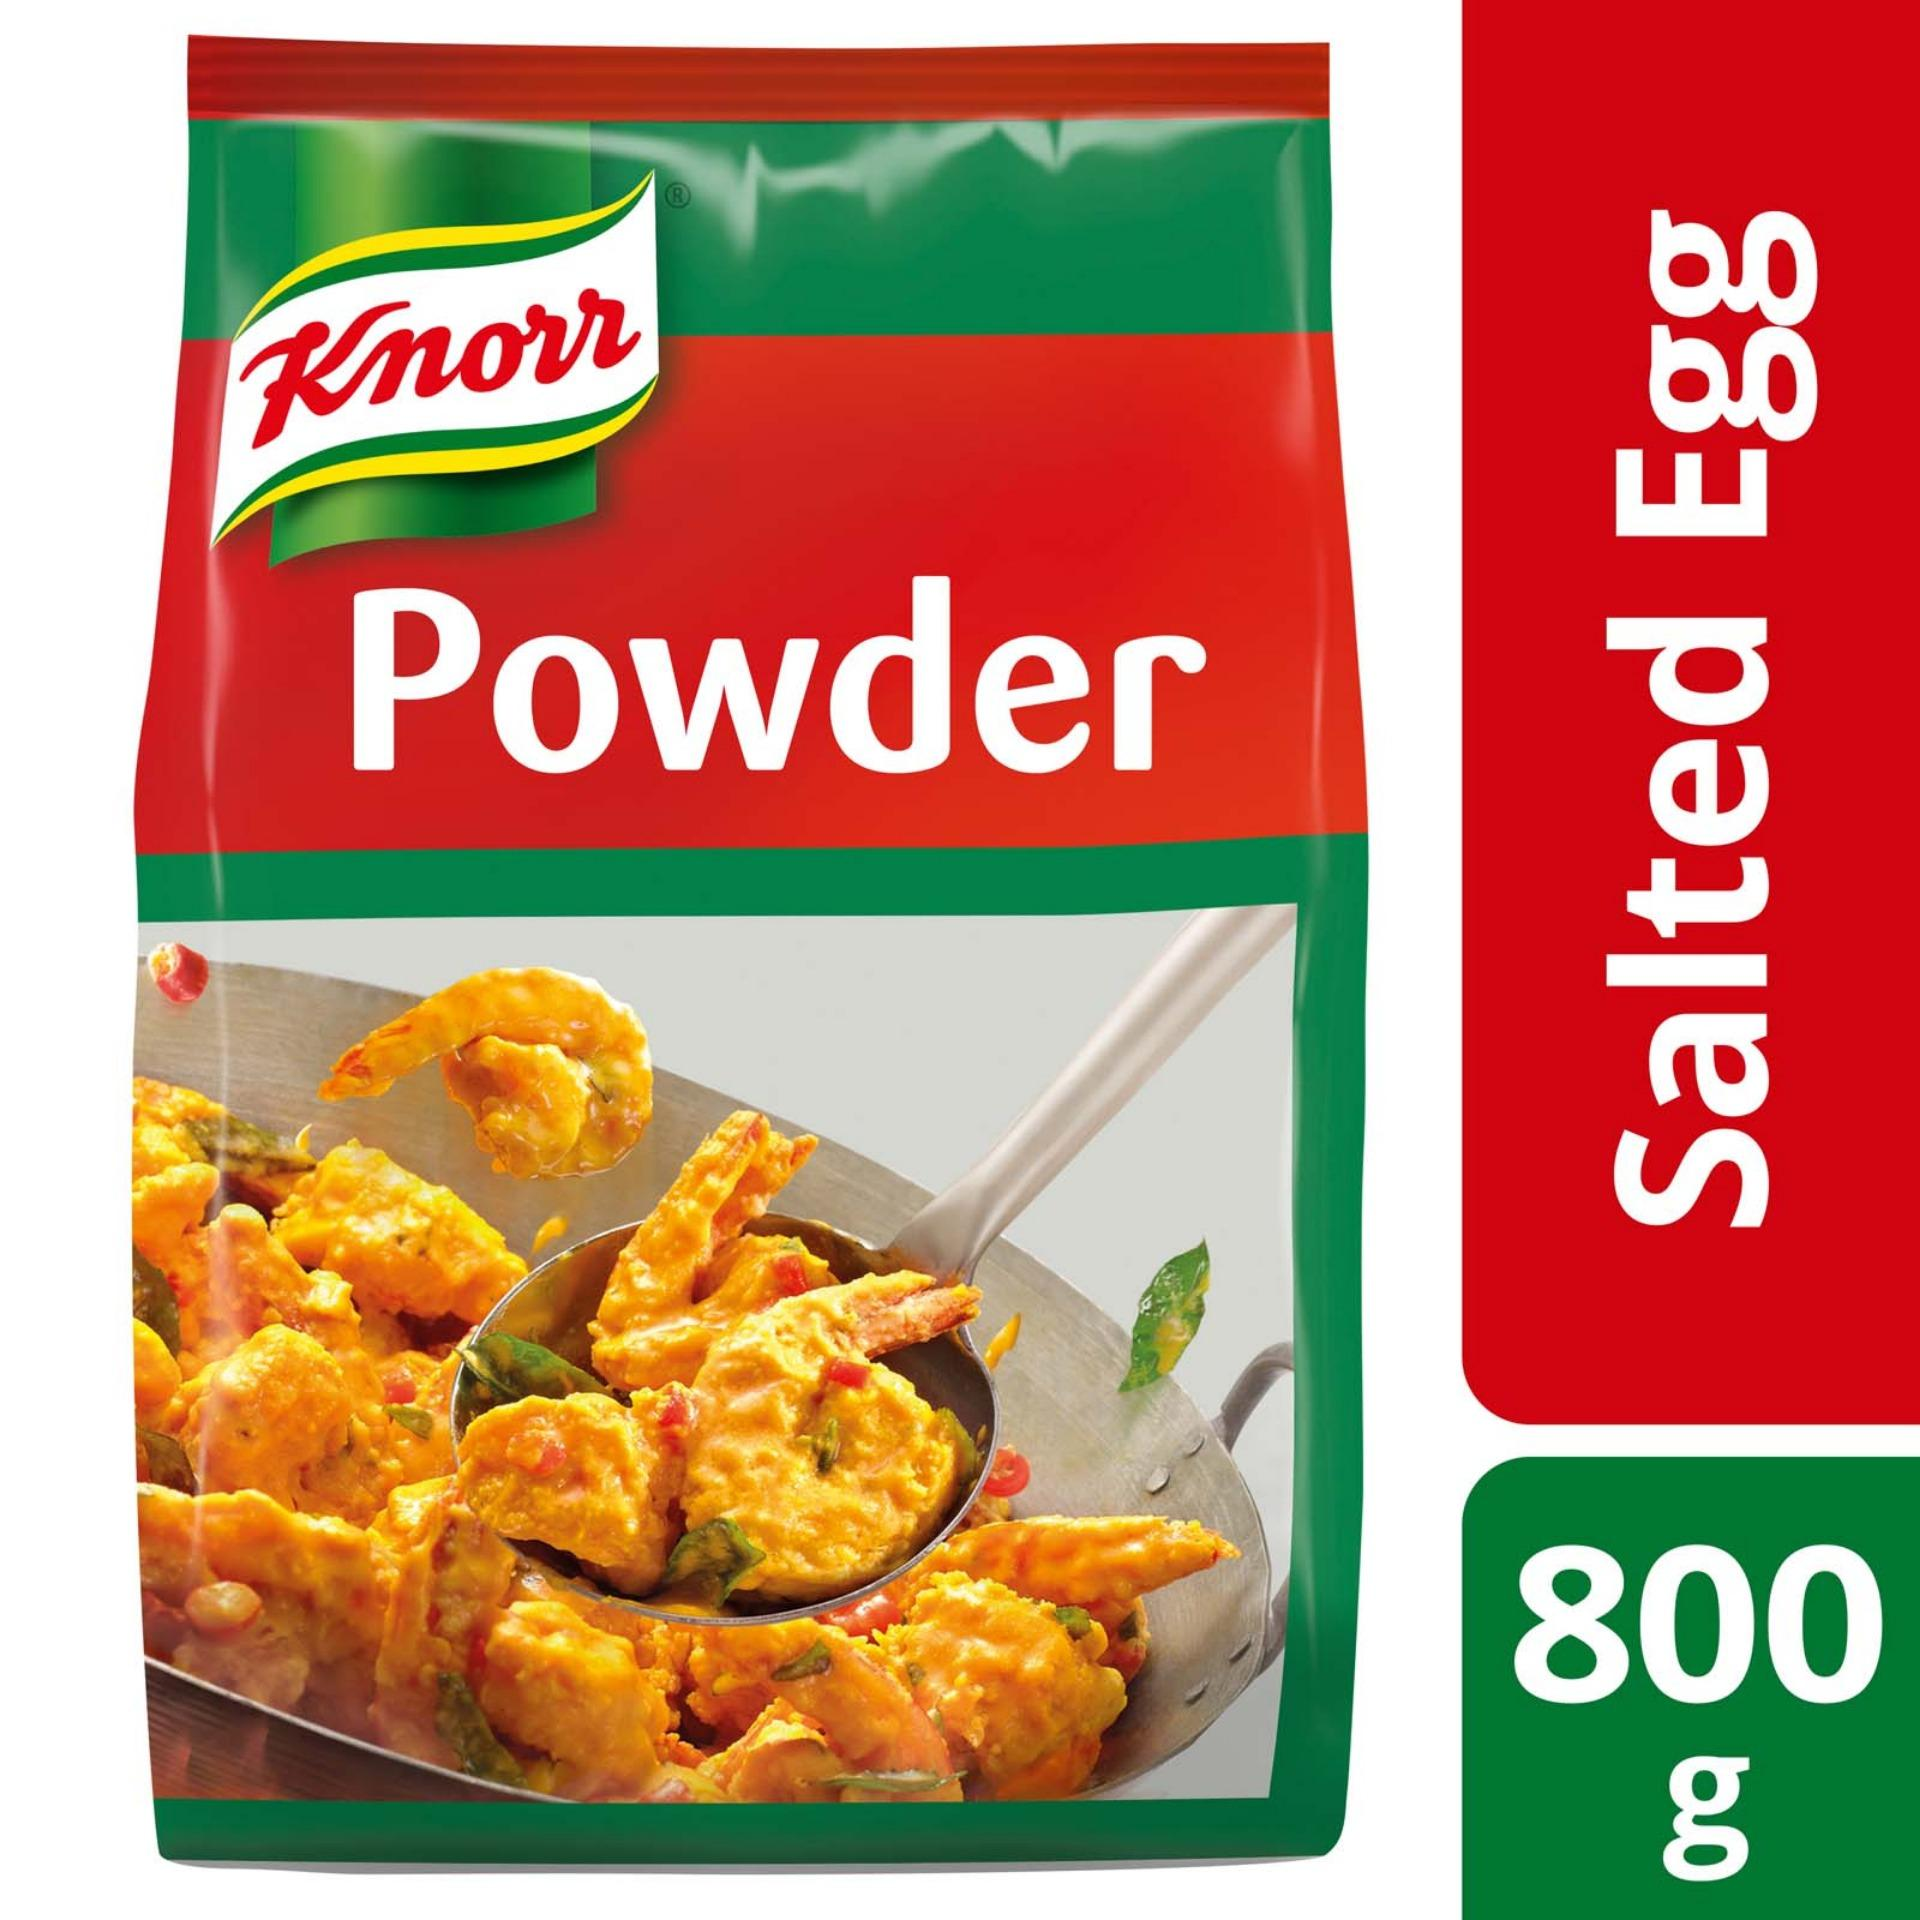 Price Golden Salted Egg Powder Knorr 800G Knorr Original